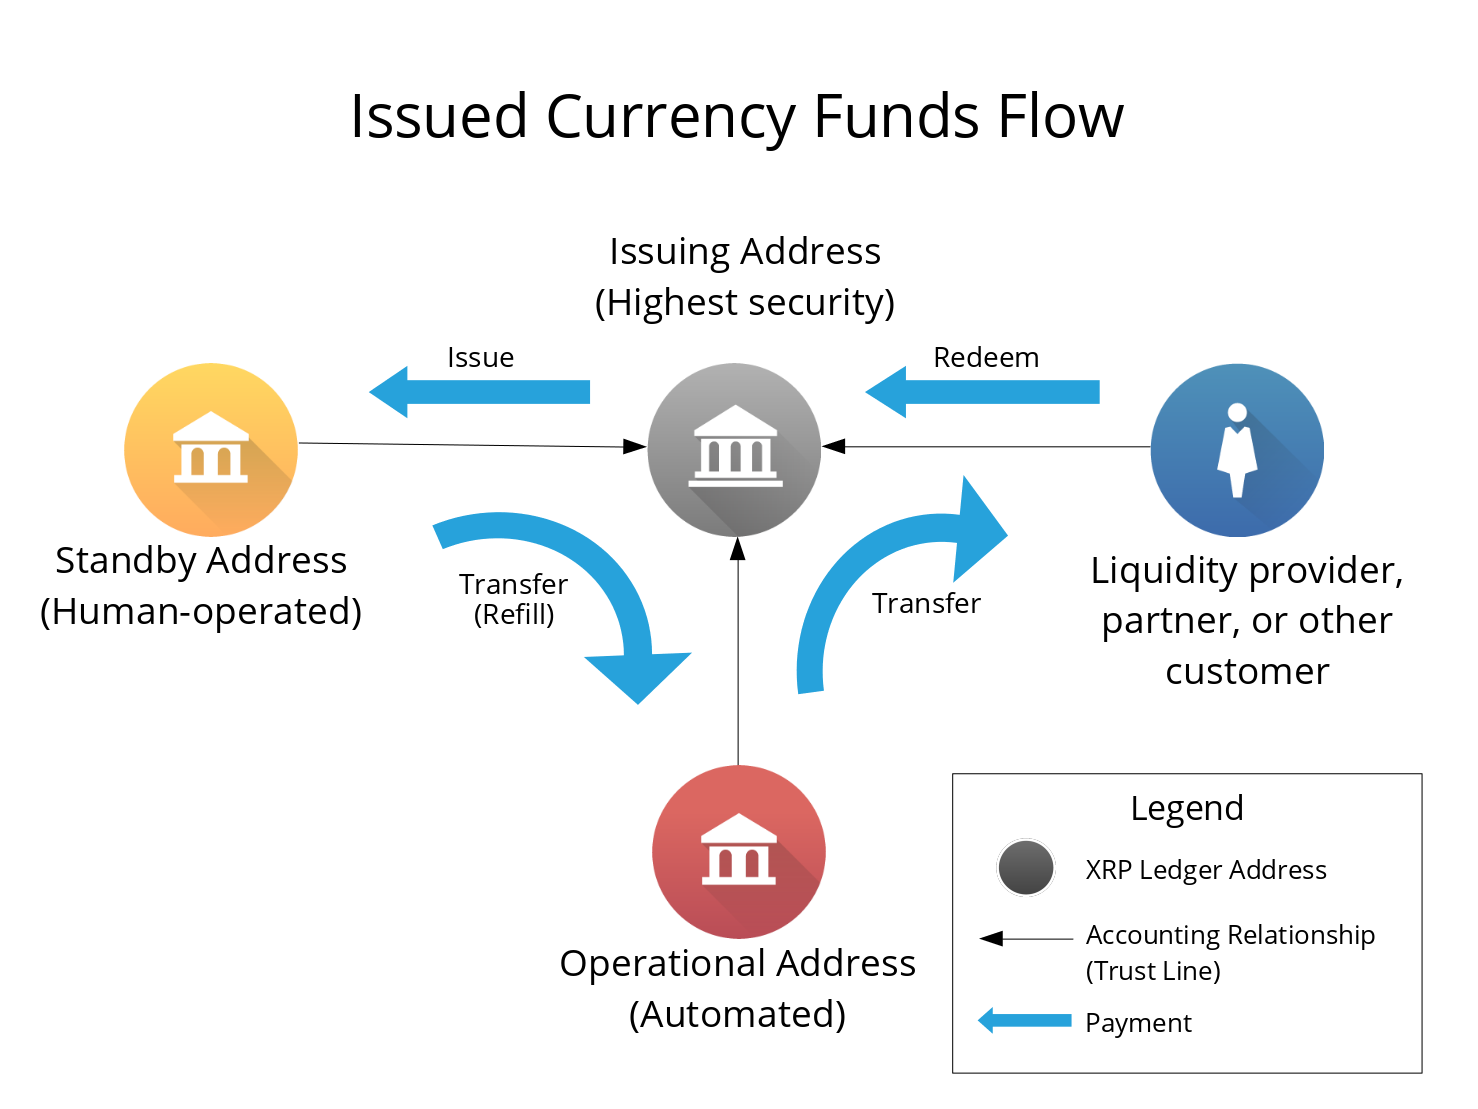 Diagram: Funds flow from the issuing address to standby addresses, to operational addresses, to customer and partner addresses, and finally back to the issuing address.